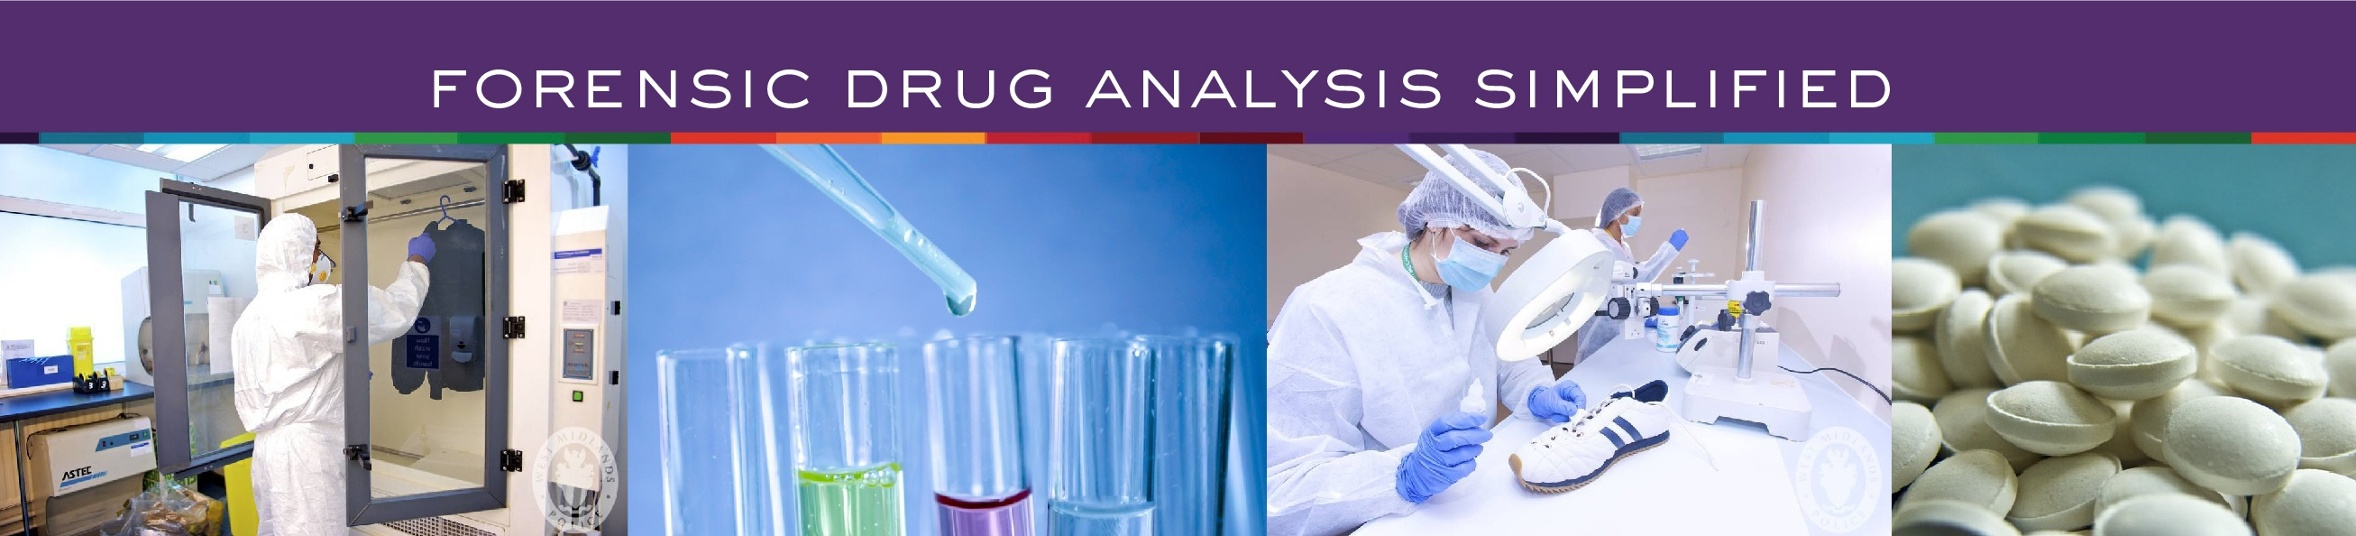 Forensic Drug Analysis Simplified